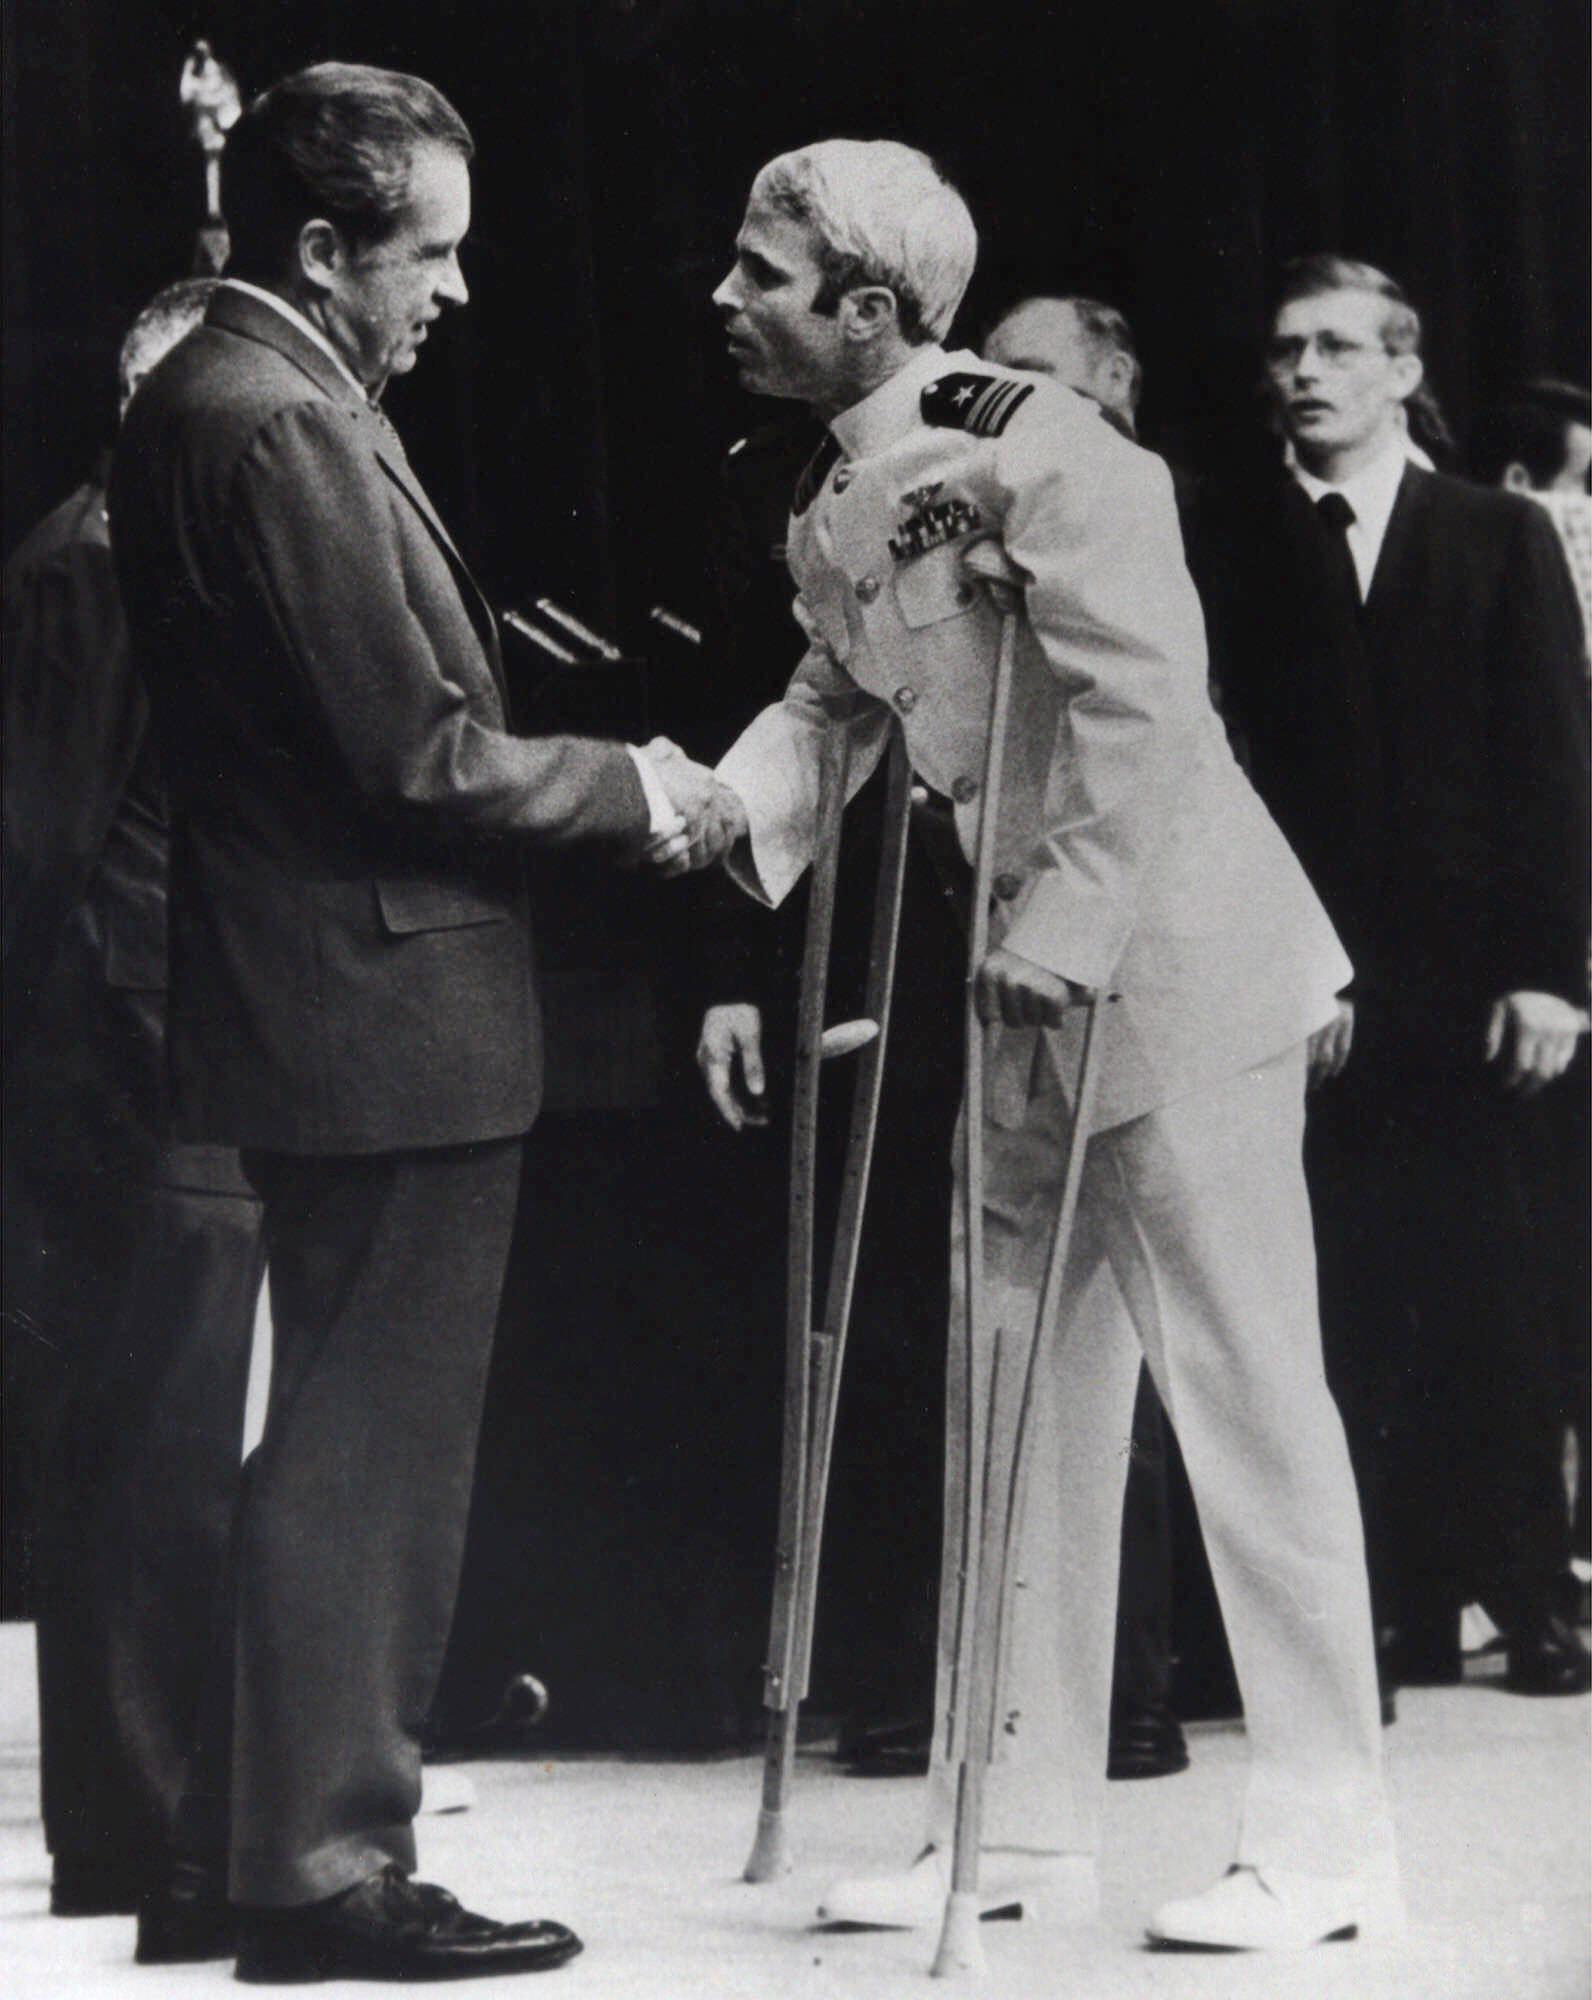 AP WAS THERE: John McCain released after 5½ years as a POW